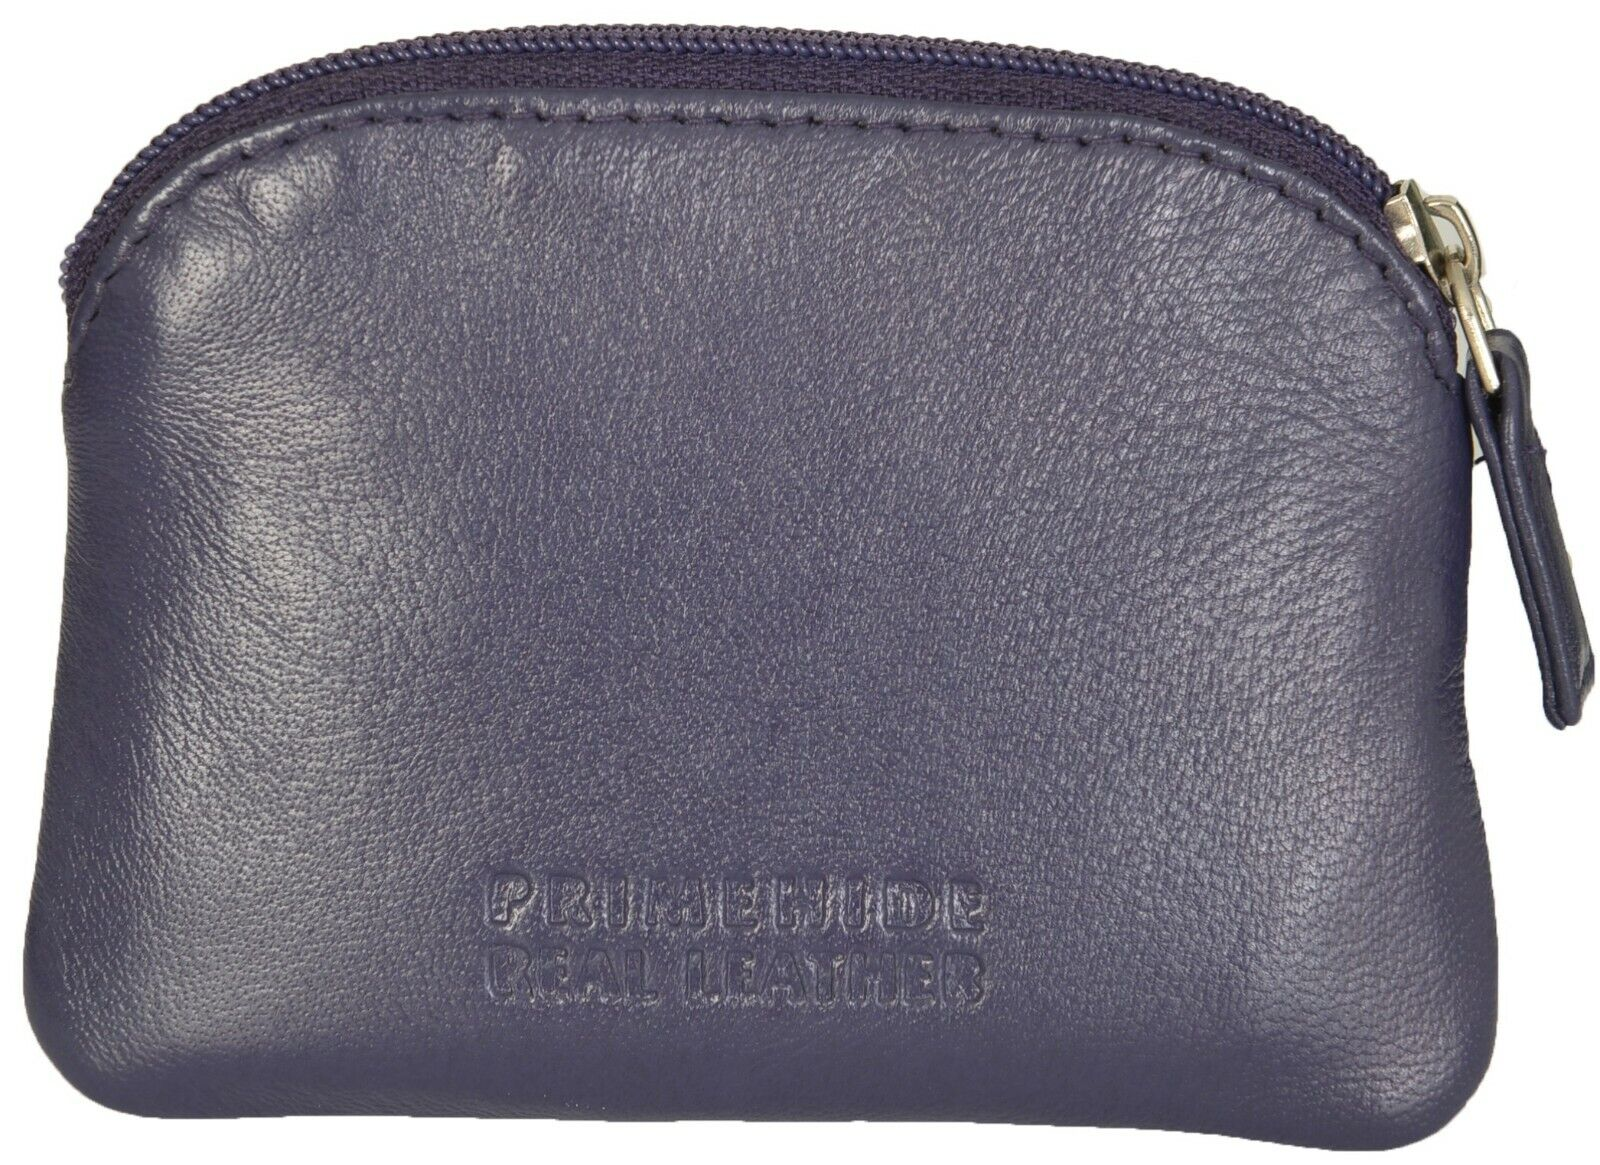 PRIMEHIDE LADIES SMALL LEATHER ZIP AROUND COIN PURSE 9 FAB COLOURS STYLE 761